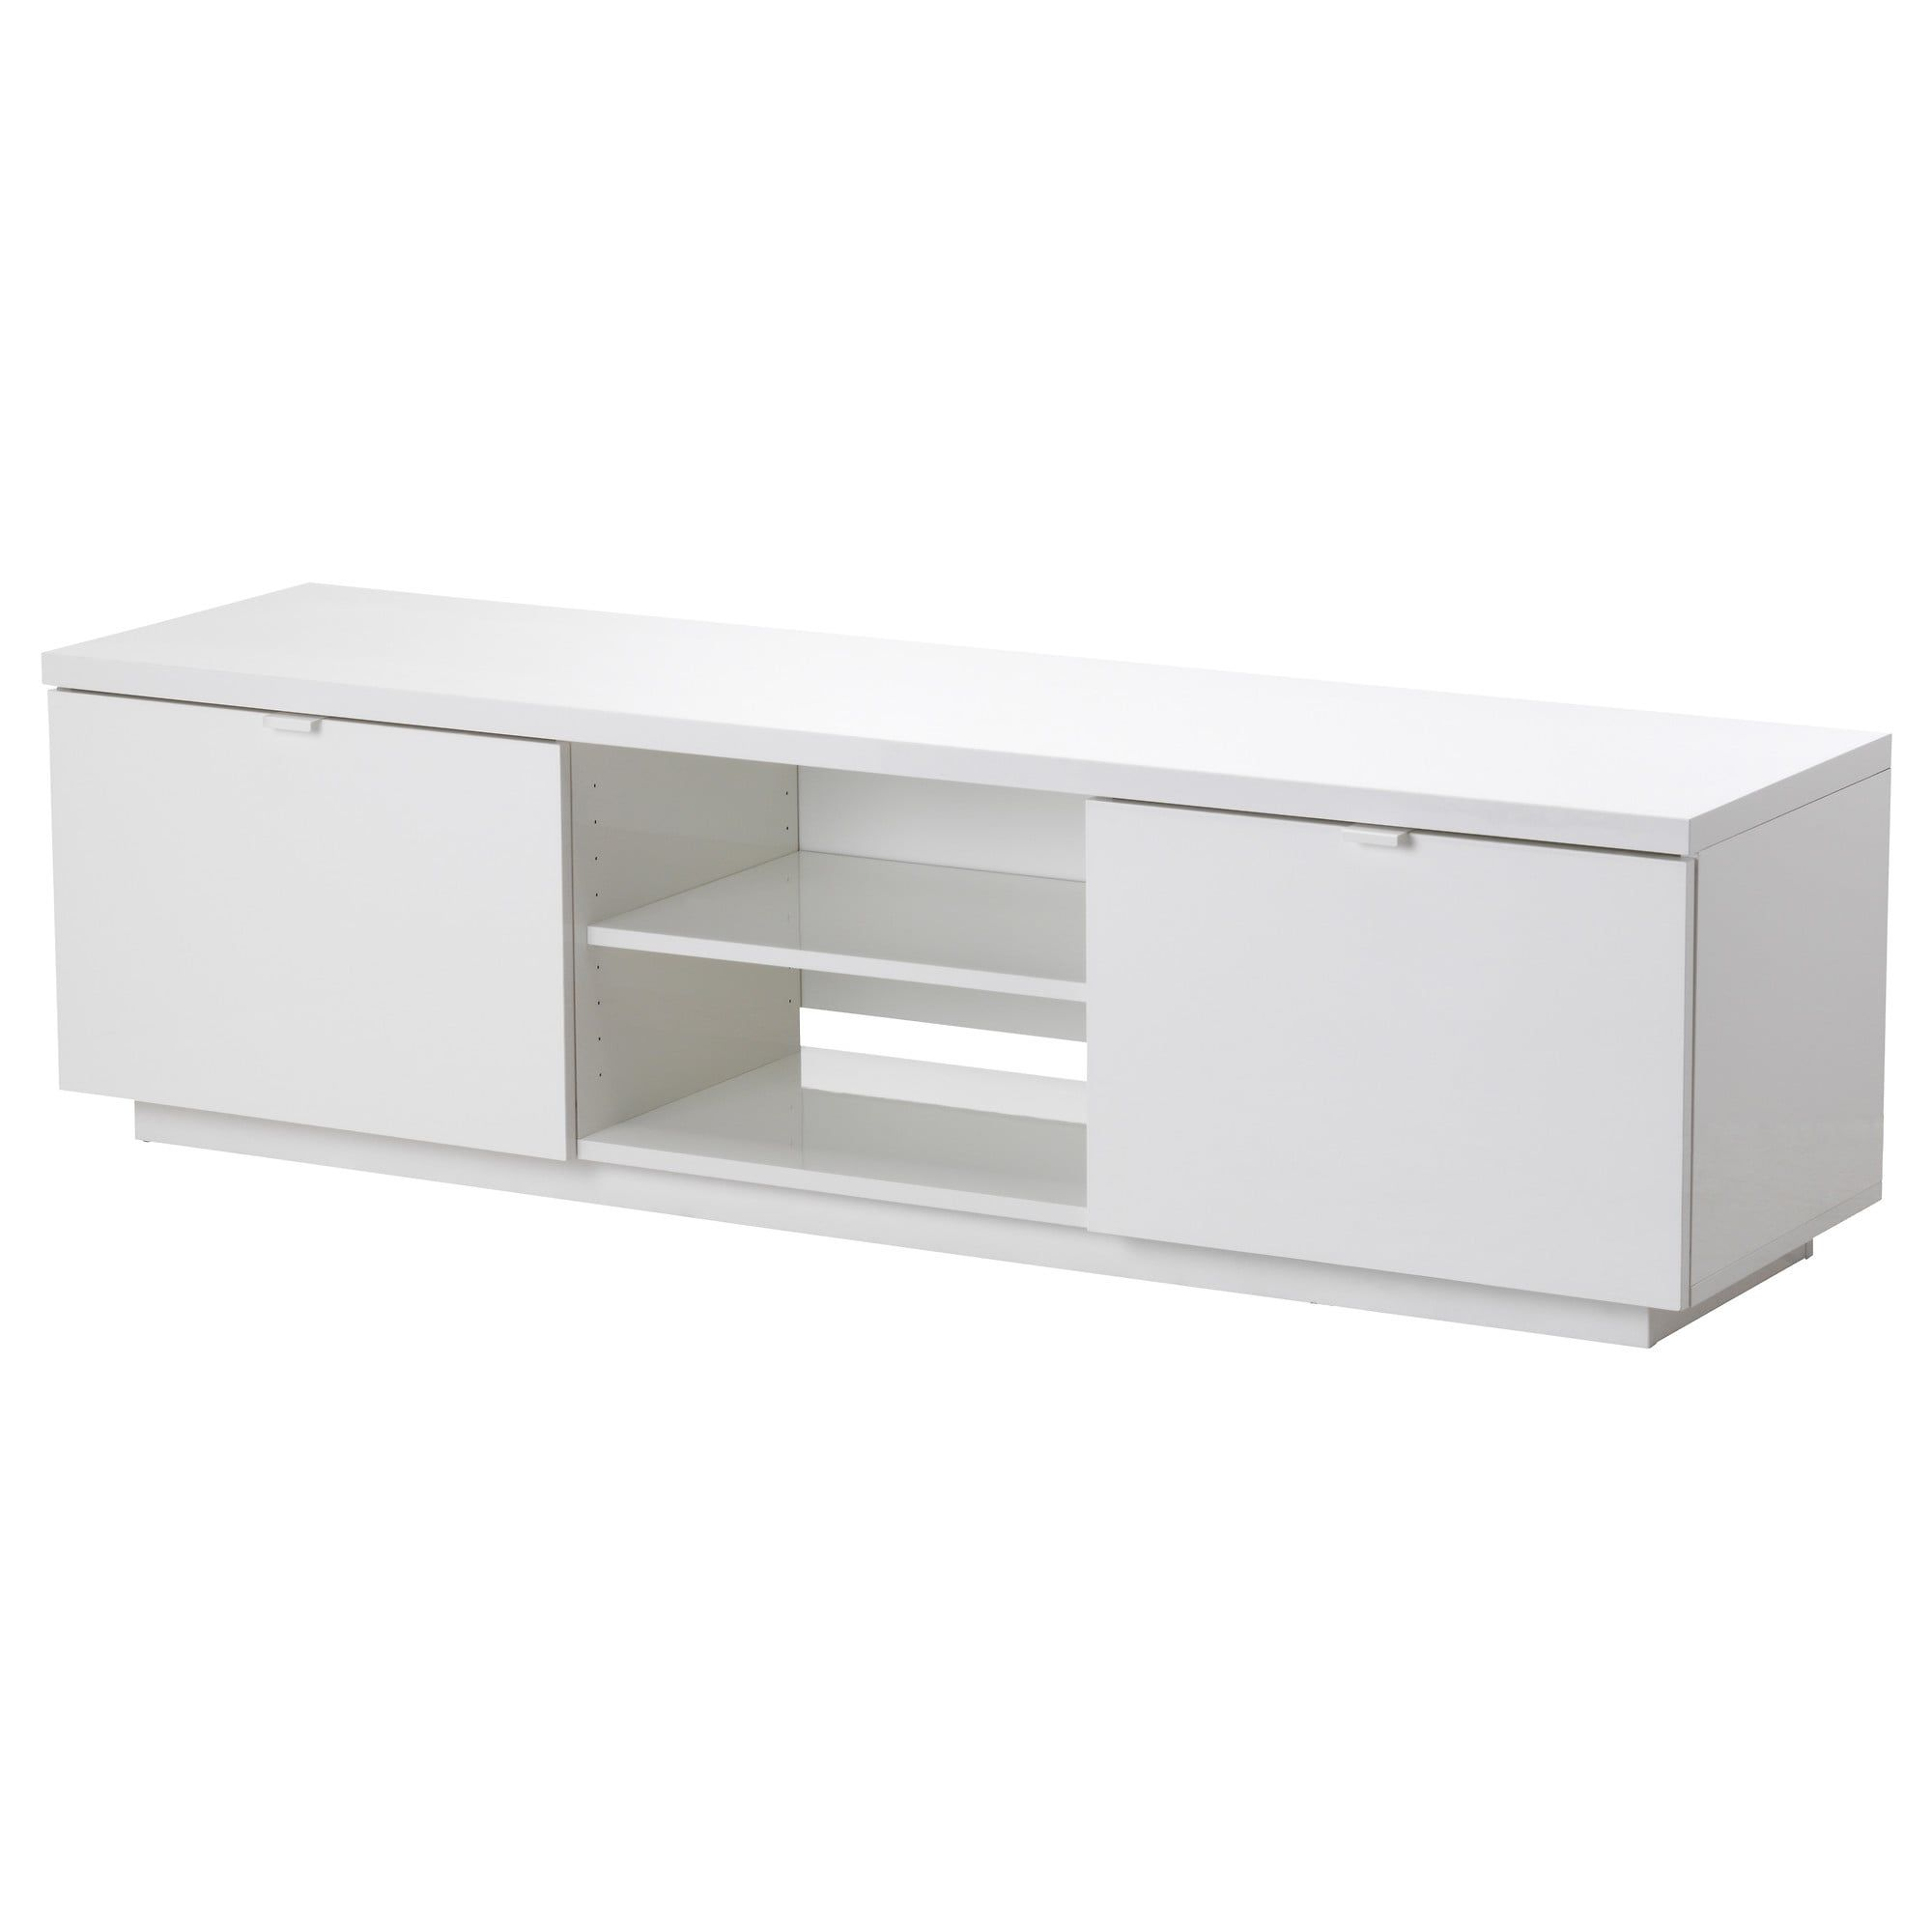 Wondrous Ikea Byas High Gloss White Tv Unit Tv Bench Ikea Tv Stand Gmtry Best Dining Table And Chair Ideas Images Gmtryco